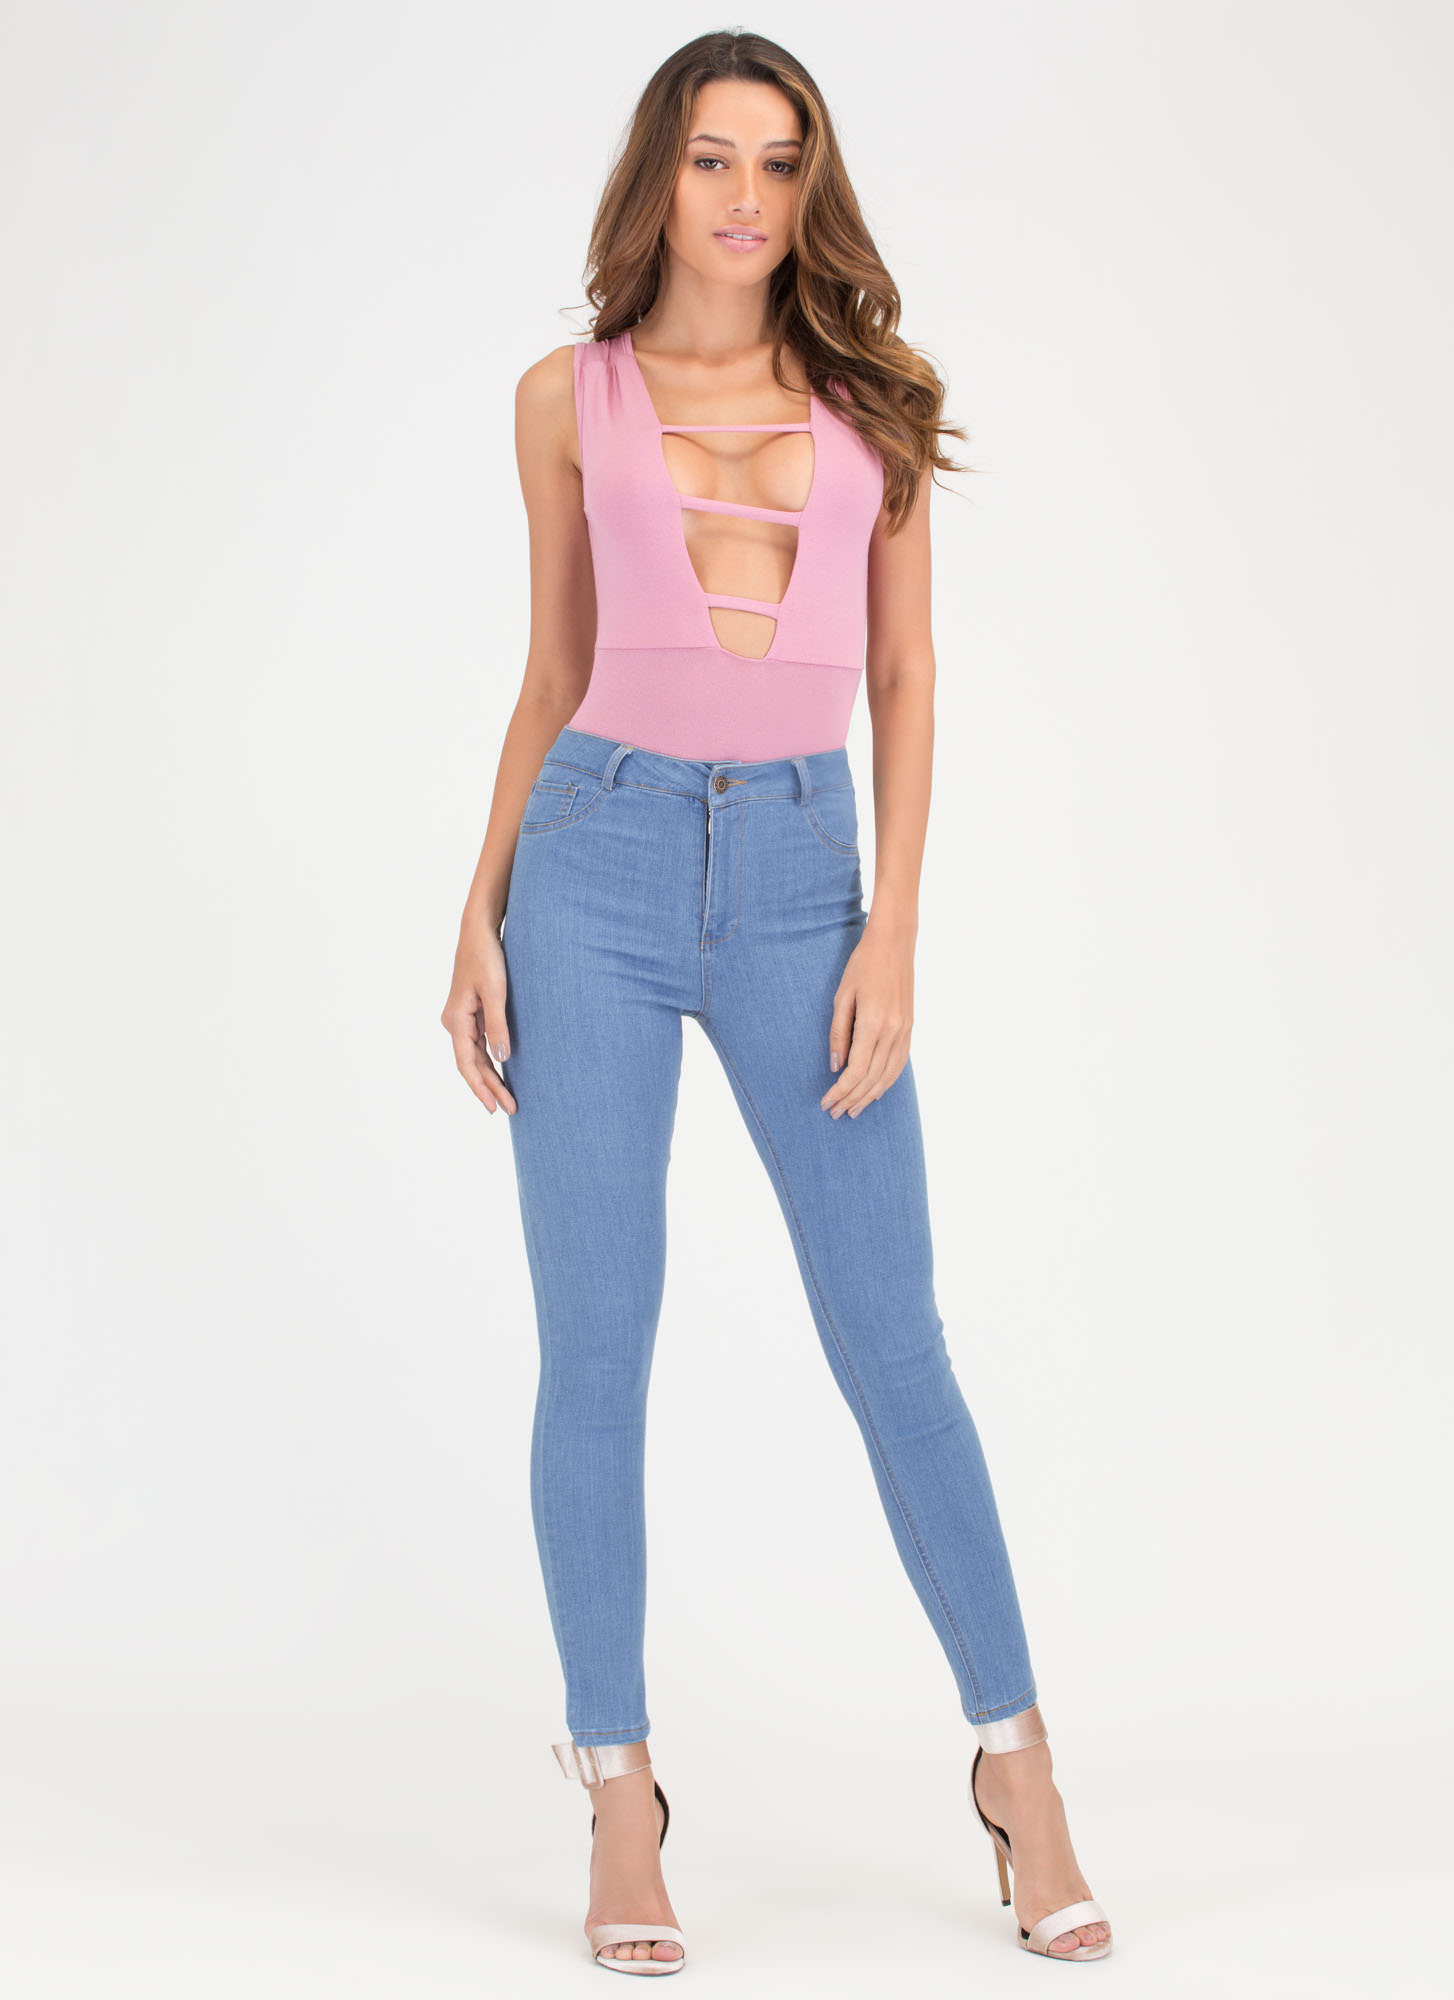 On The Rung Track Strappy Bodysuit MAUVE